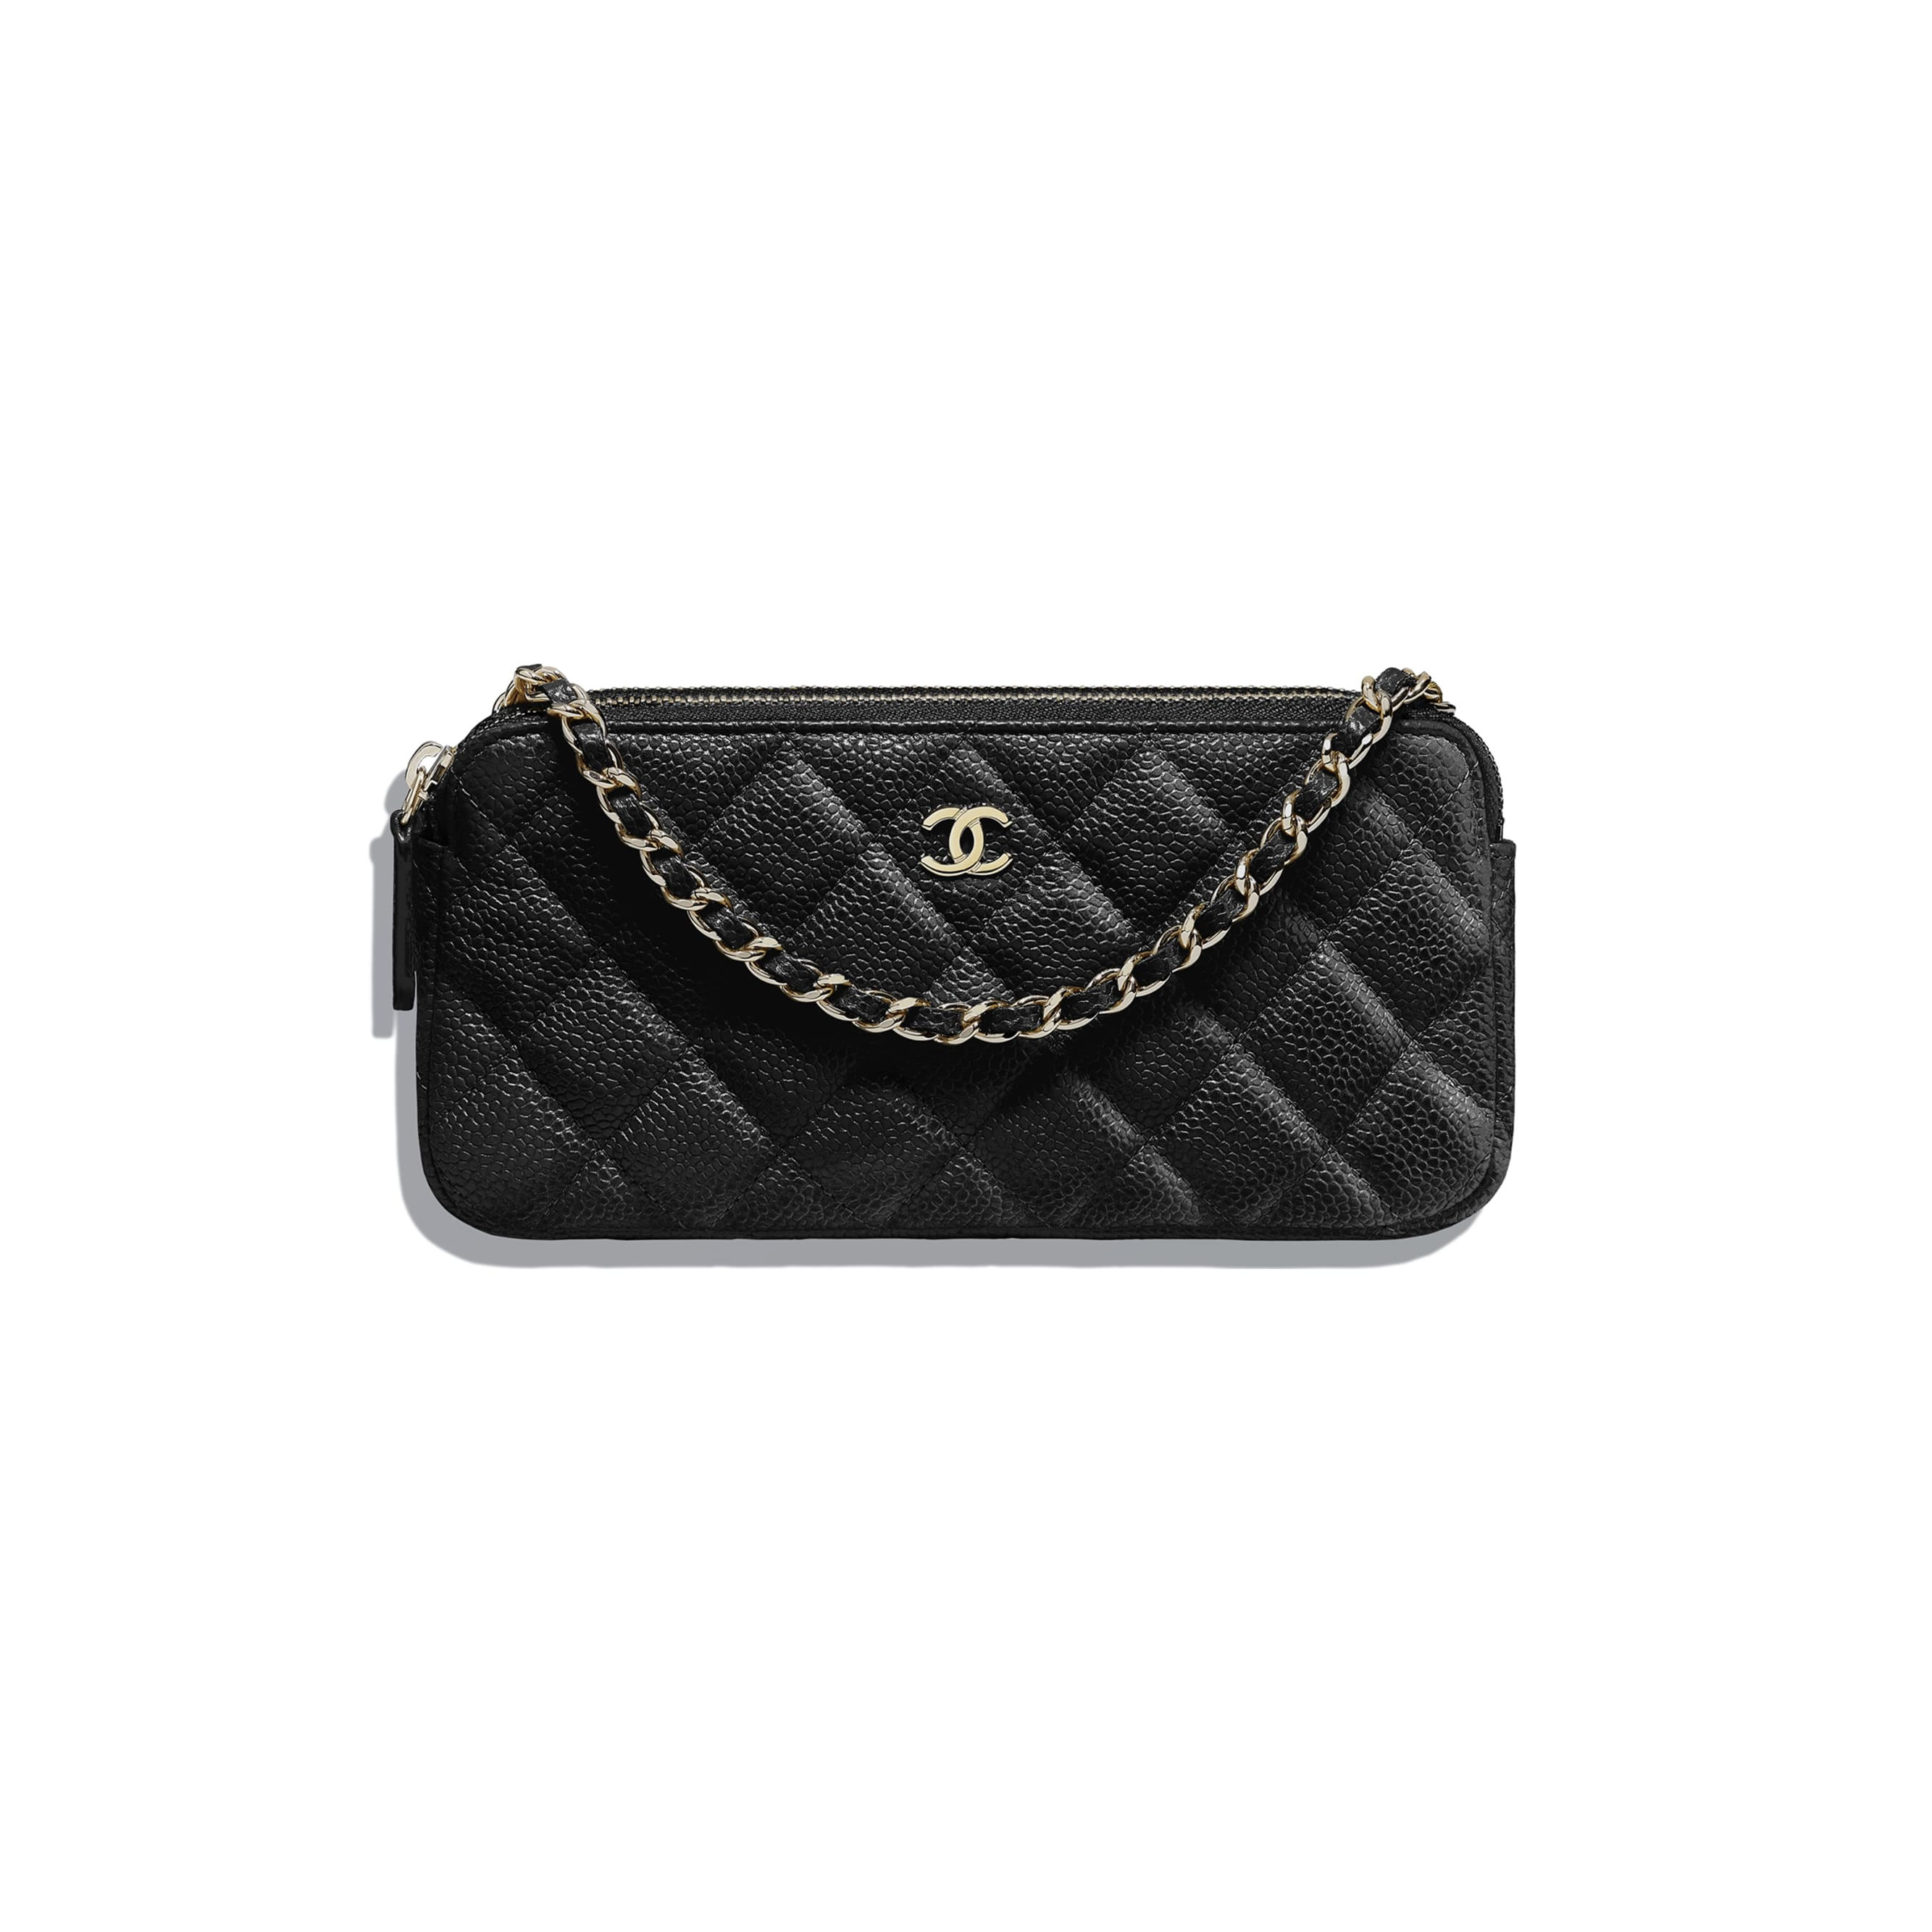 Classic Clutch With Chain - Black - Grained Calfskin & Gold-Tone Metal - Default view - see standard sized version